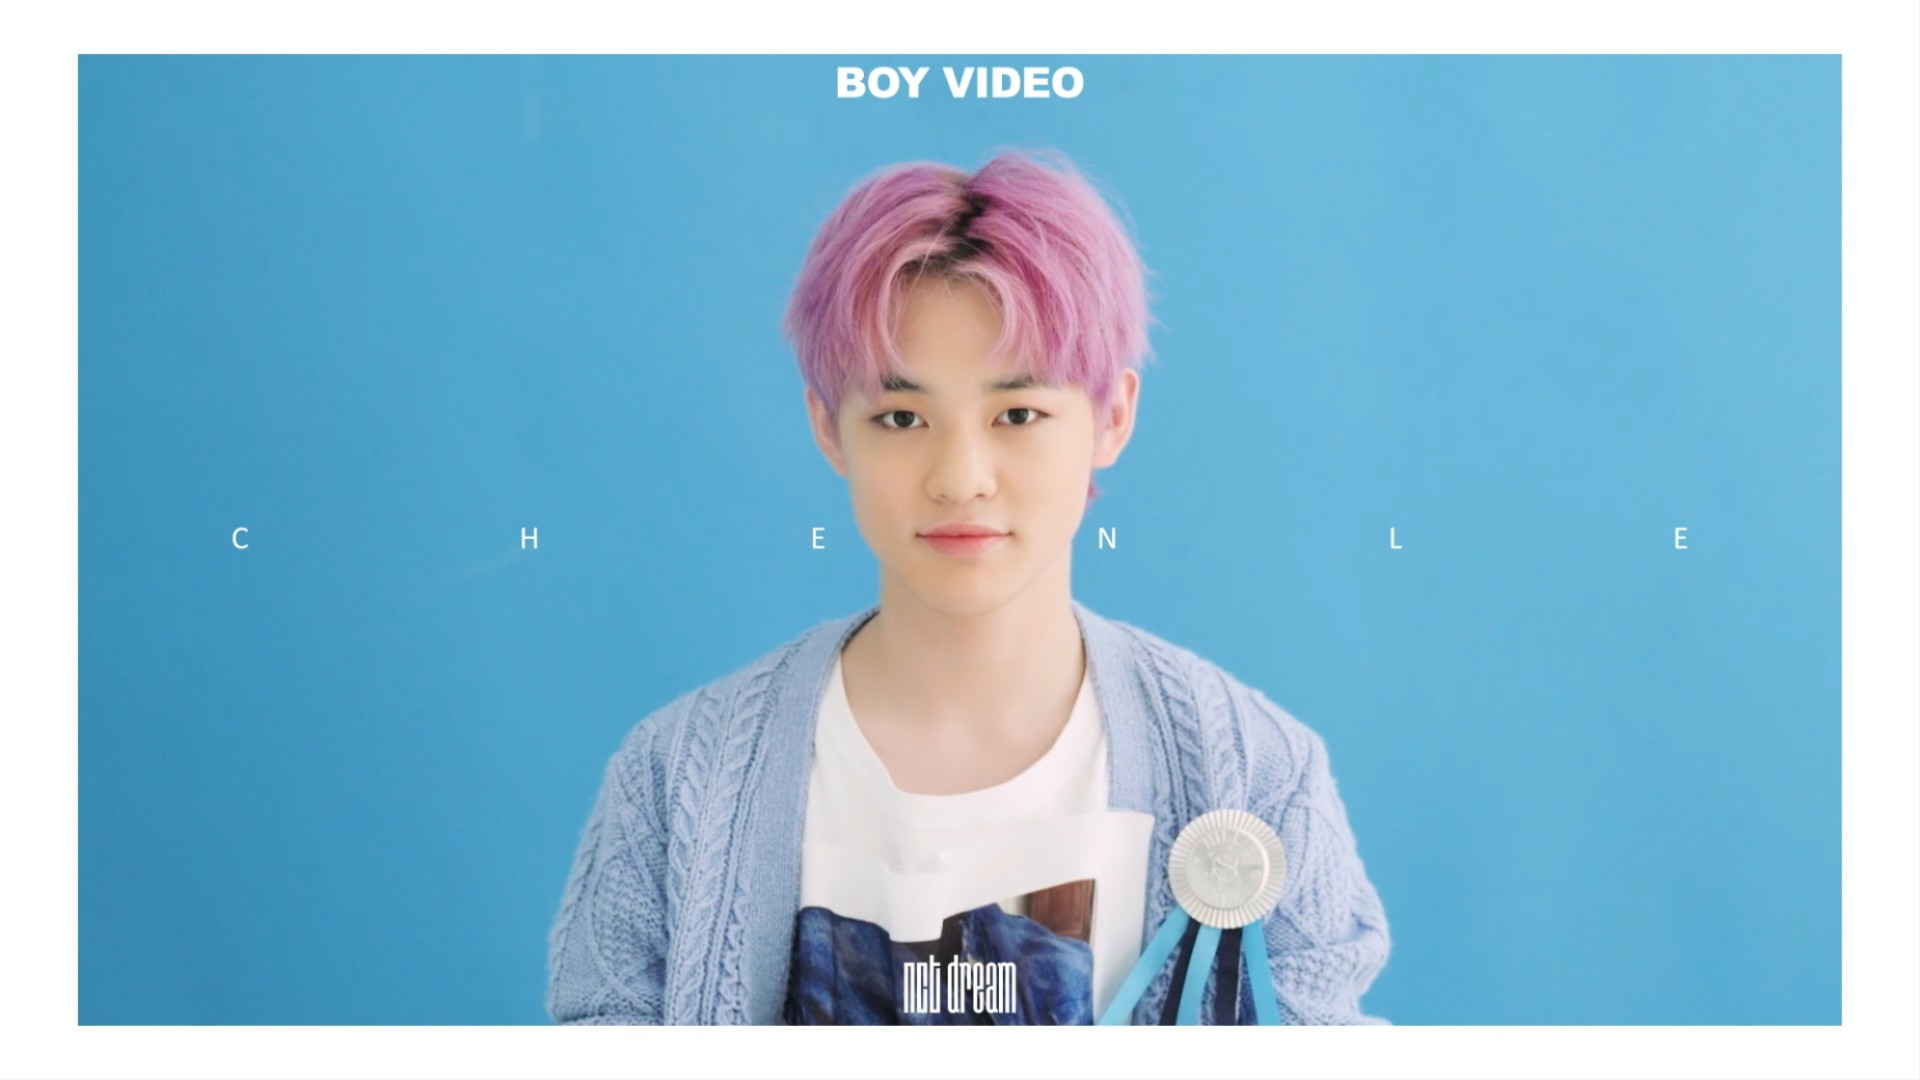 NCT DREAM BOY #CHENLE VIDEO